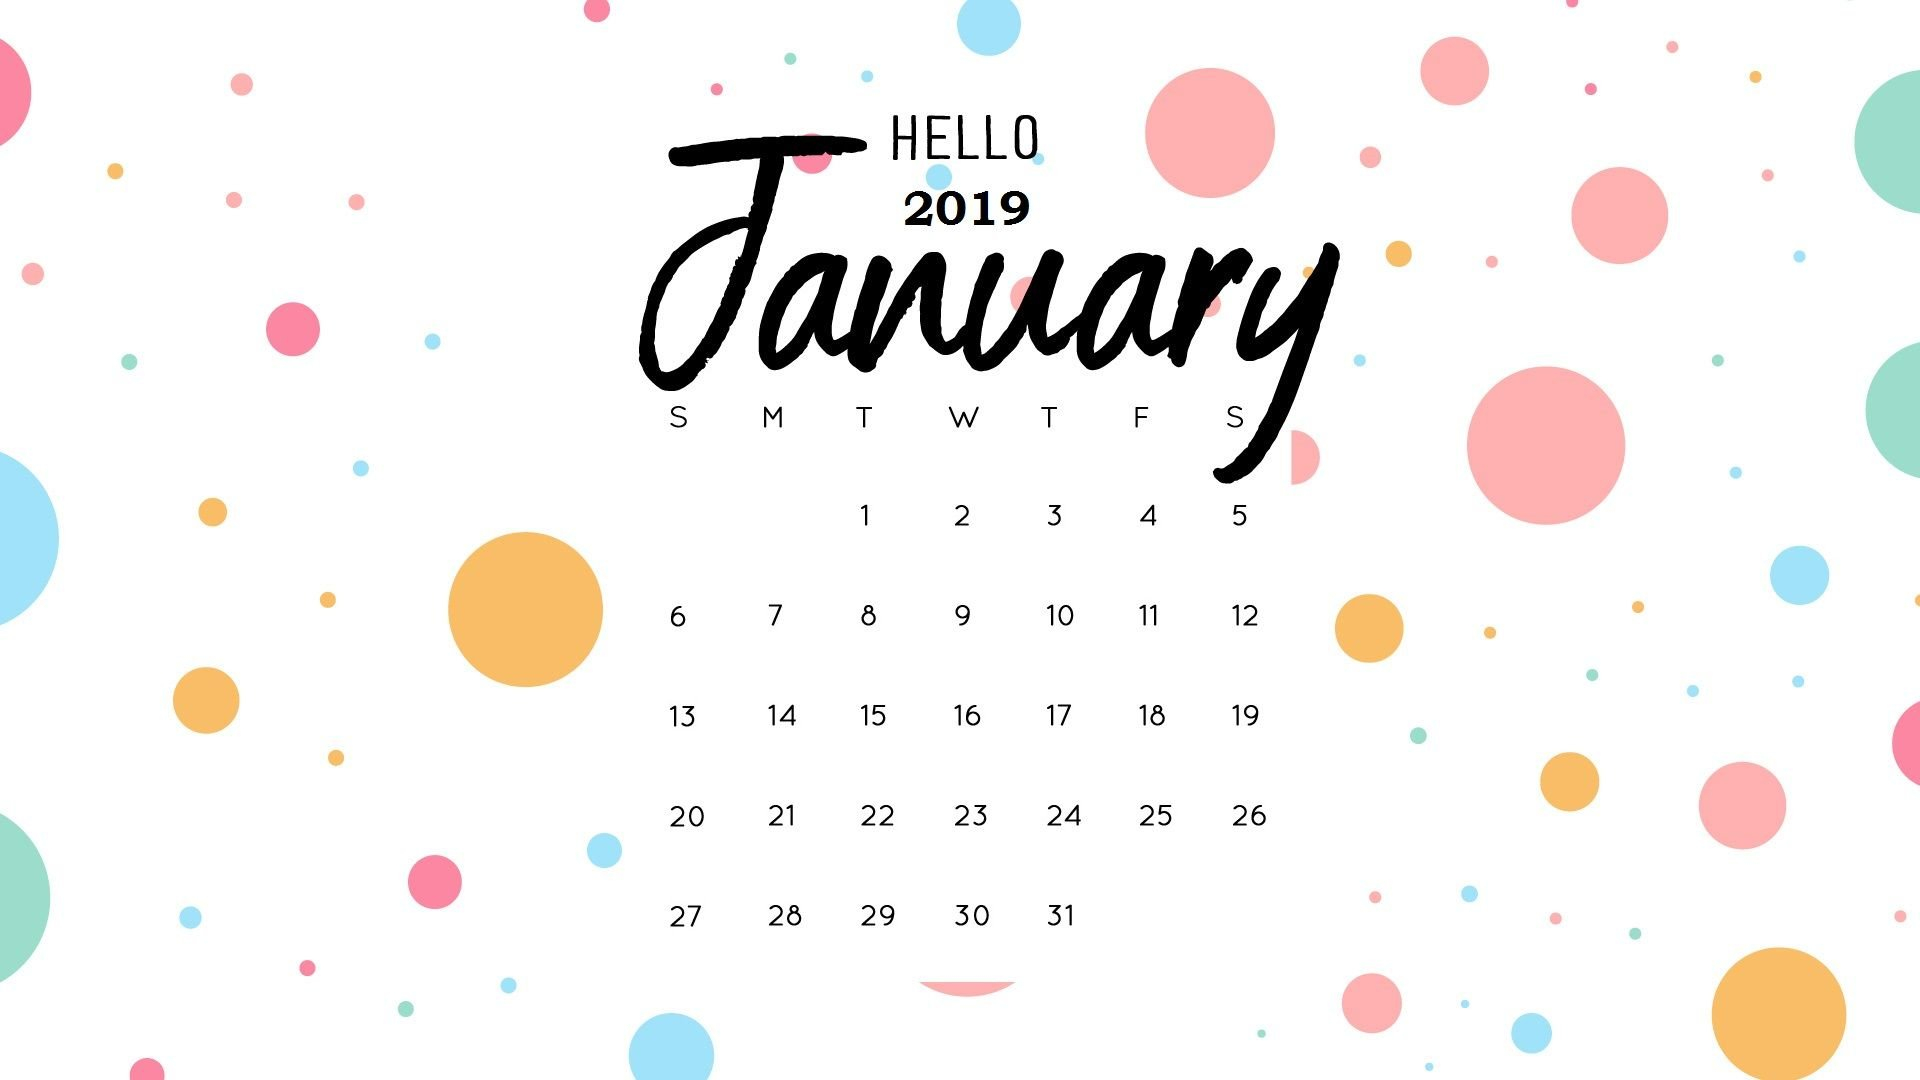 Hello January 2019 Calendar Wallpaper | Monthly Calendar Templates Calendar 2019 Wallpaper